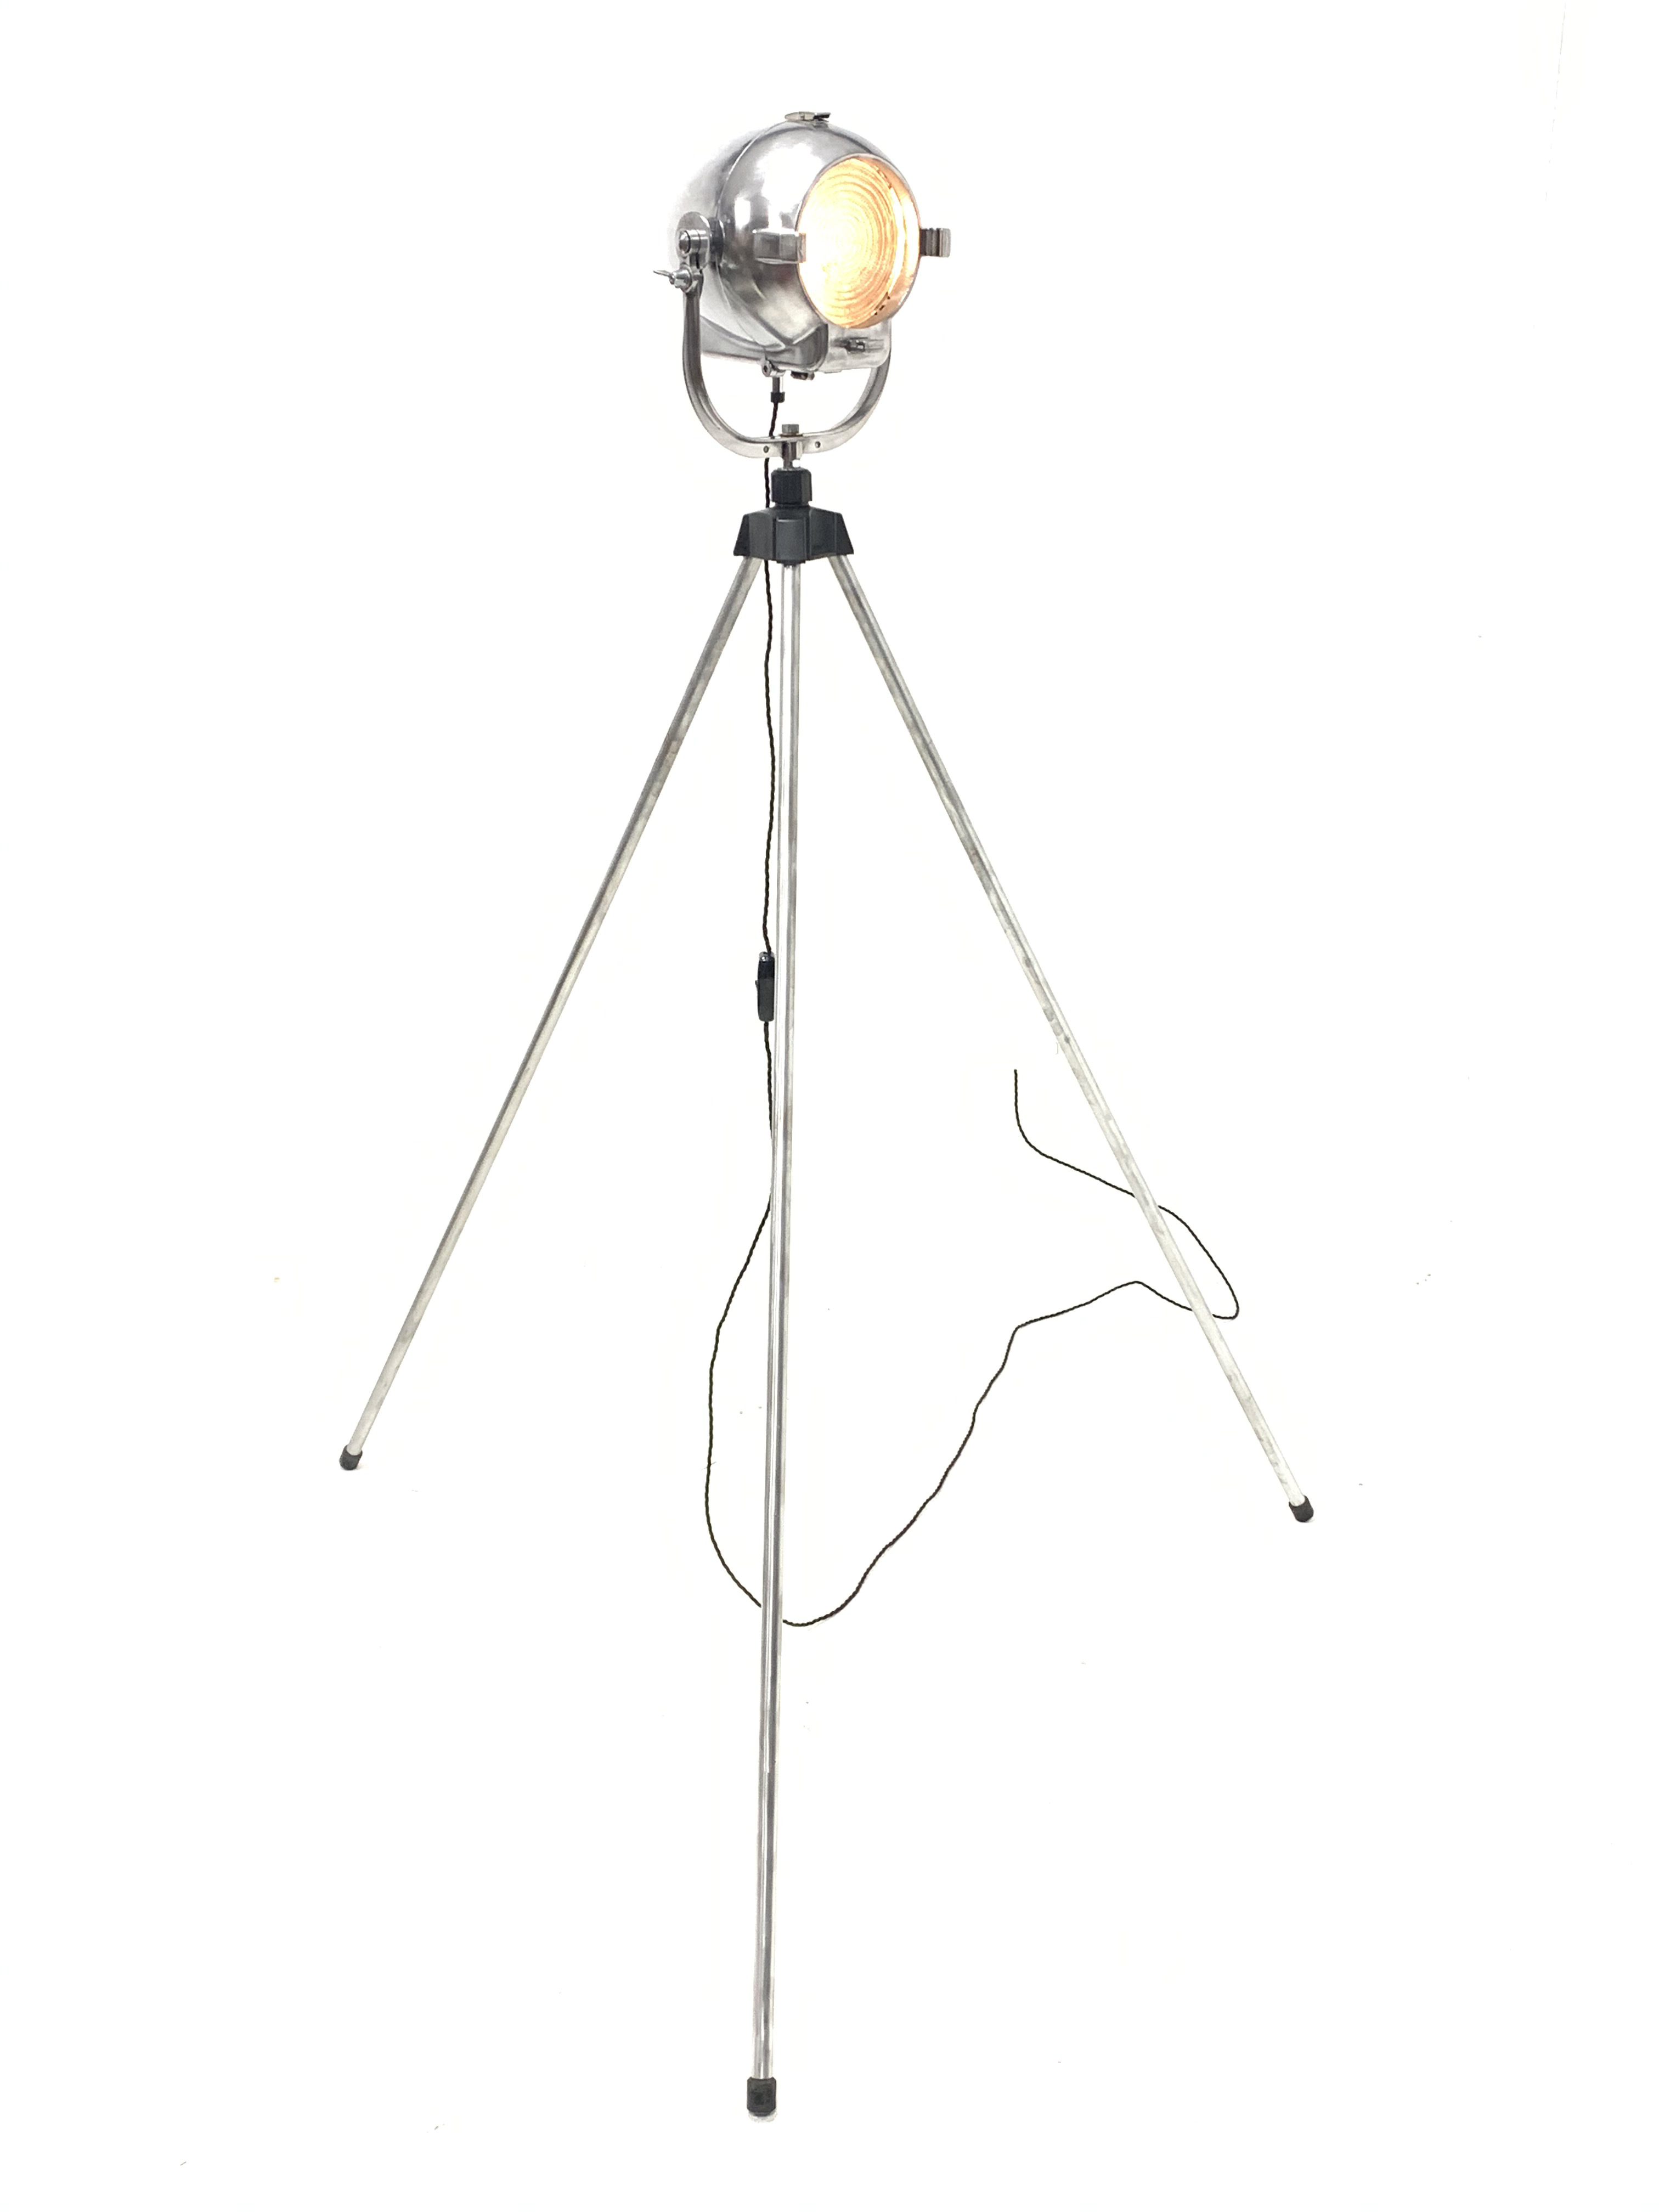 Mid 20th century 'Rank Strand' polished alloy stage light